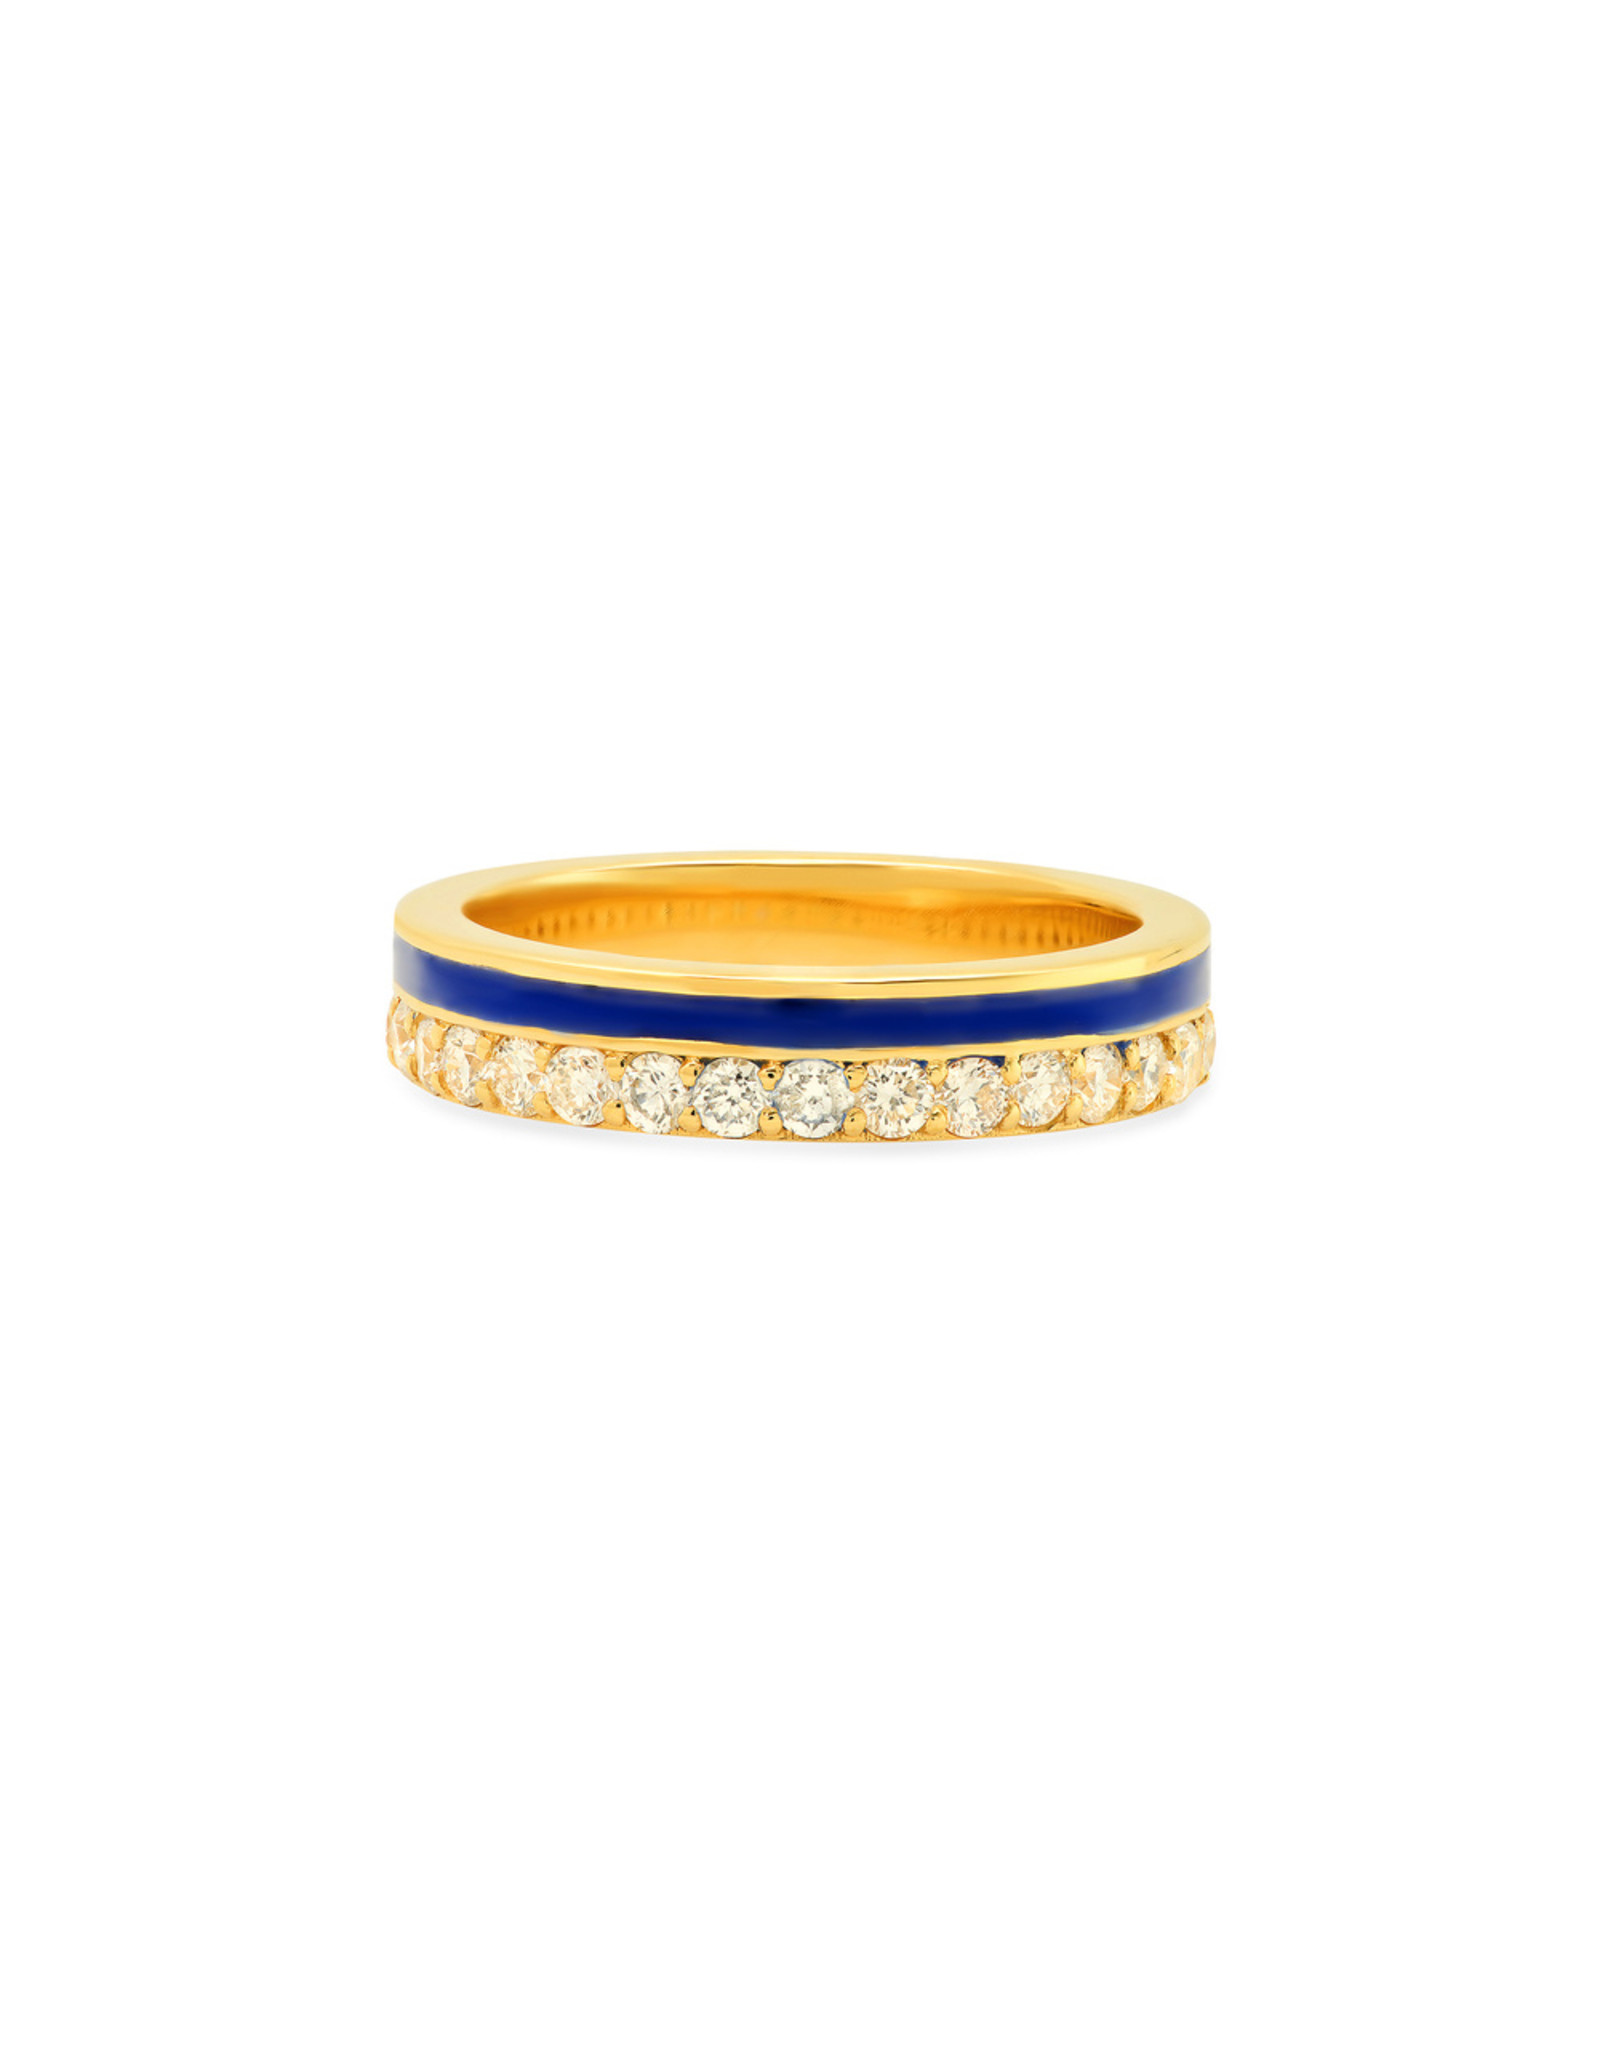 Colette Jewelry Colette Galaxia Enamel Diamond Ring (Color: Yellow Gold / Blue, Size: 6.5)